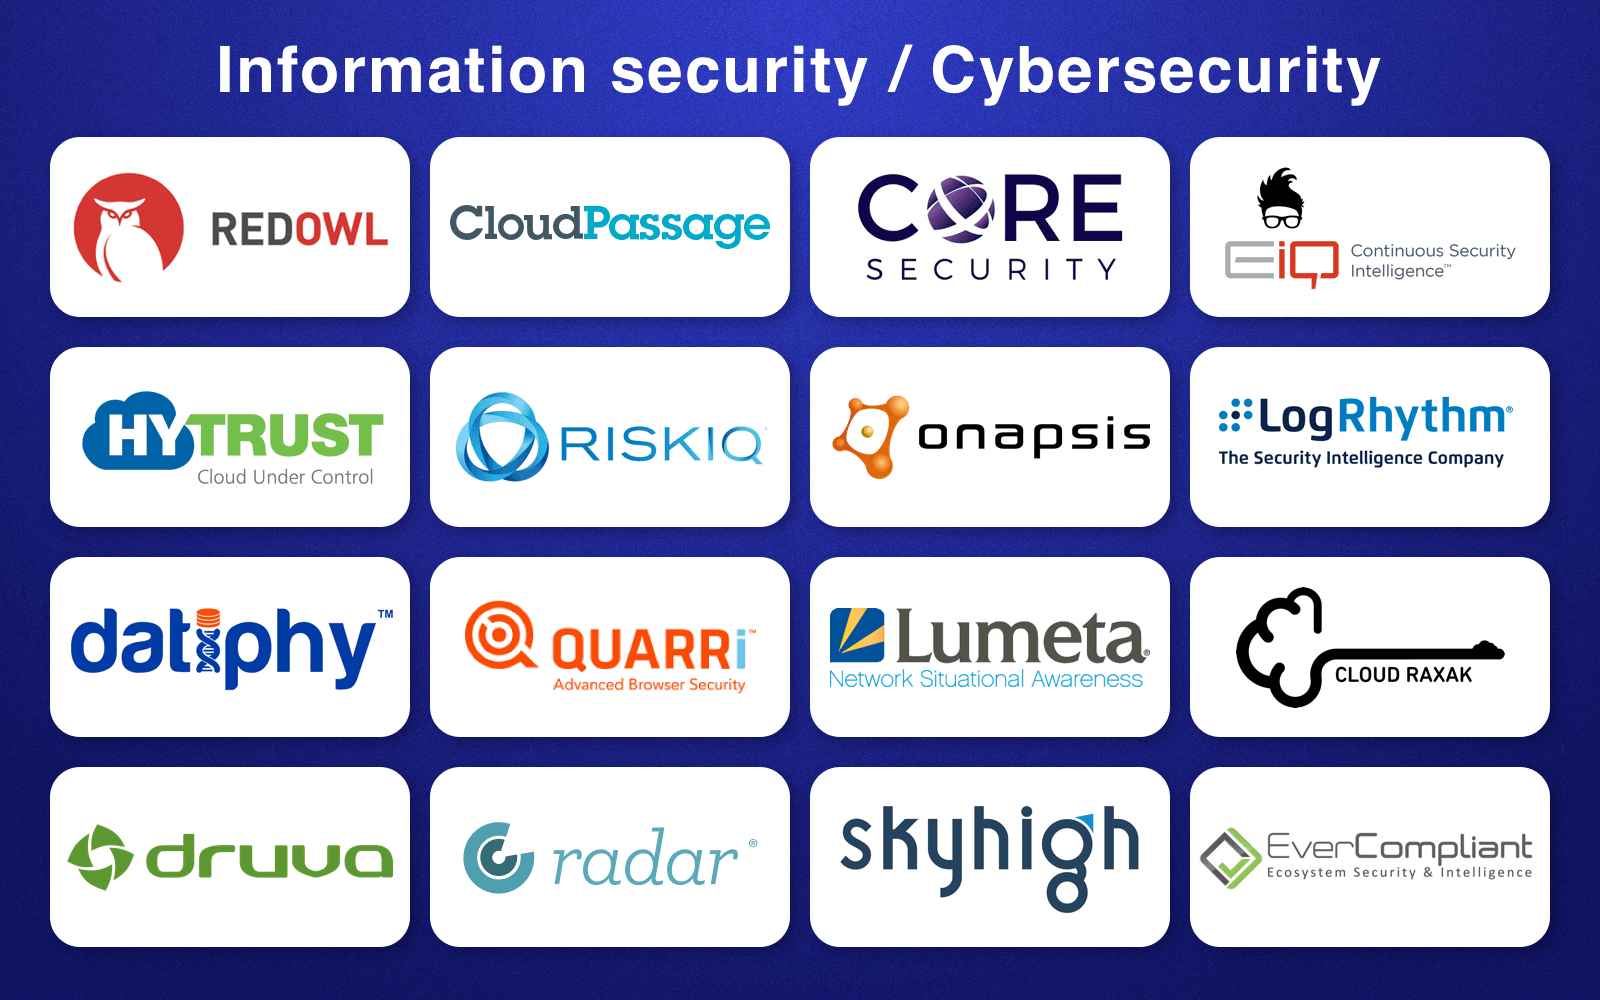 RegTech companies in cybersecurity field